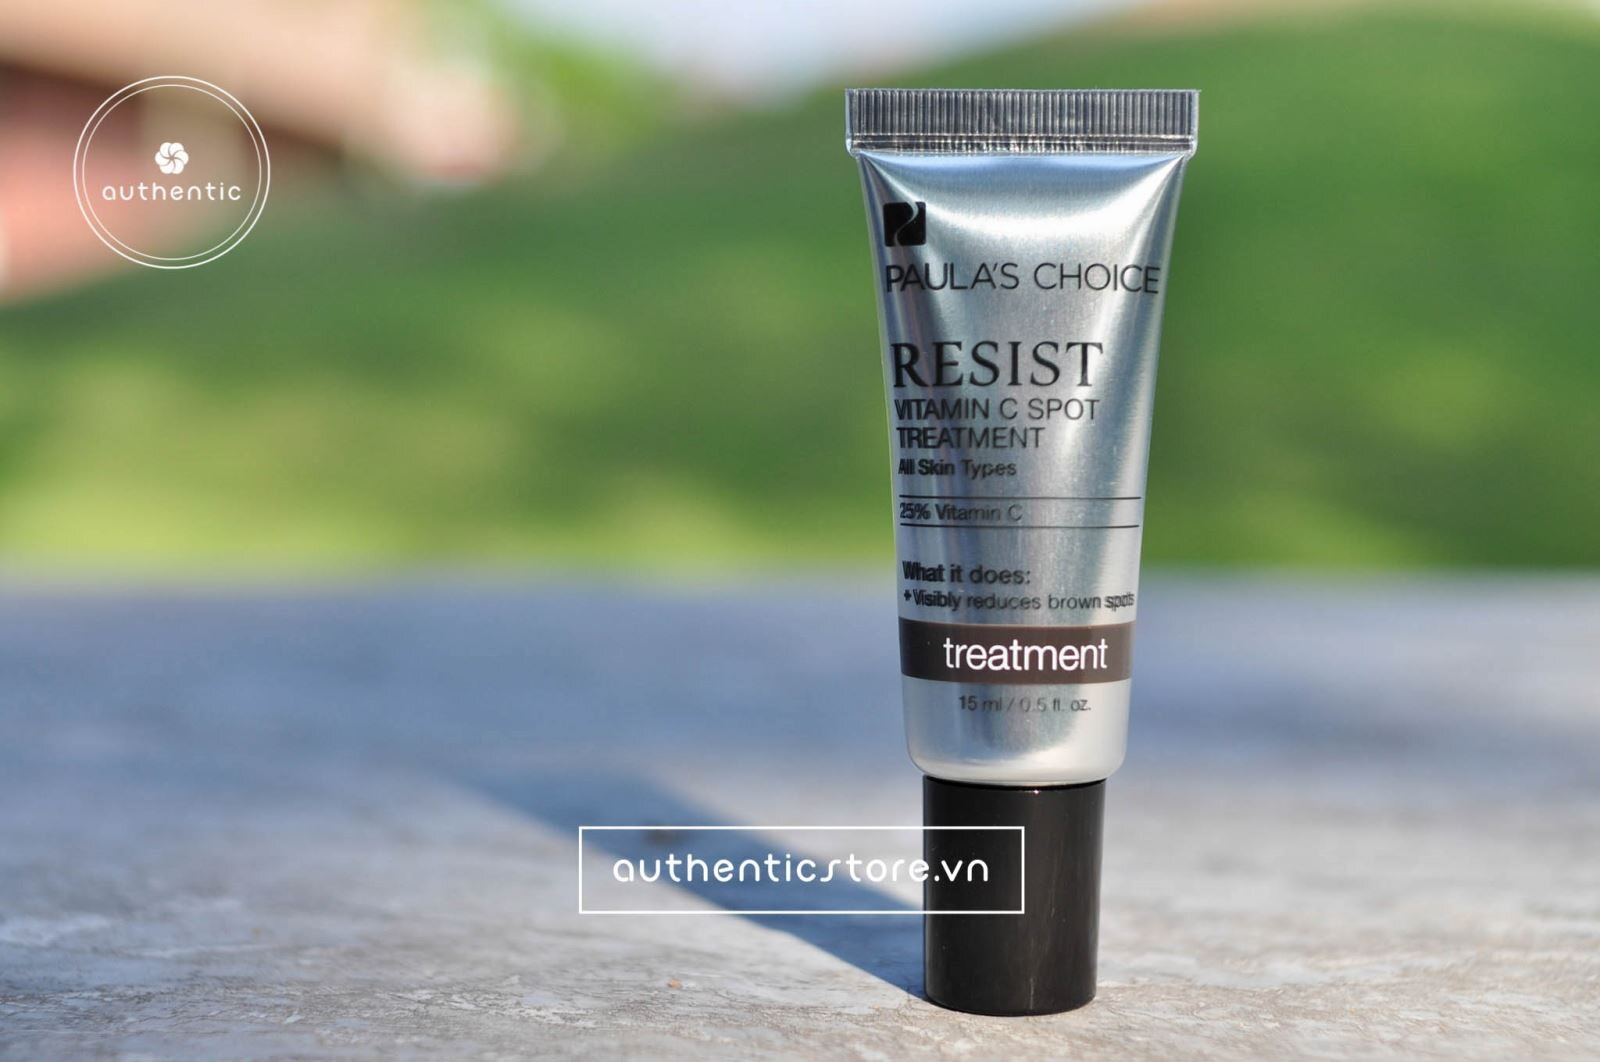 Tinh chất đặc trị nám Paula's Choice Resist 25% Vitamin C Spot Treatment 15ml